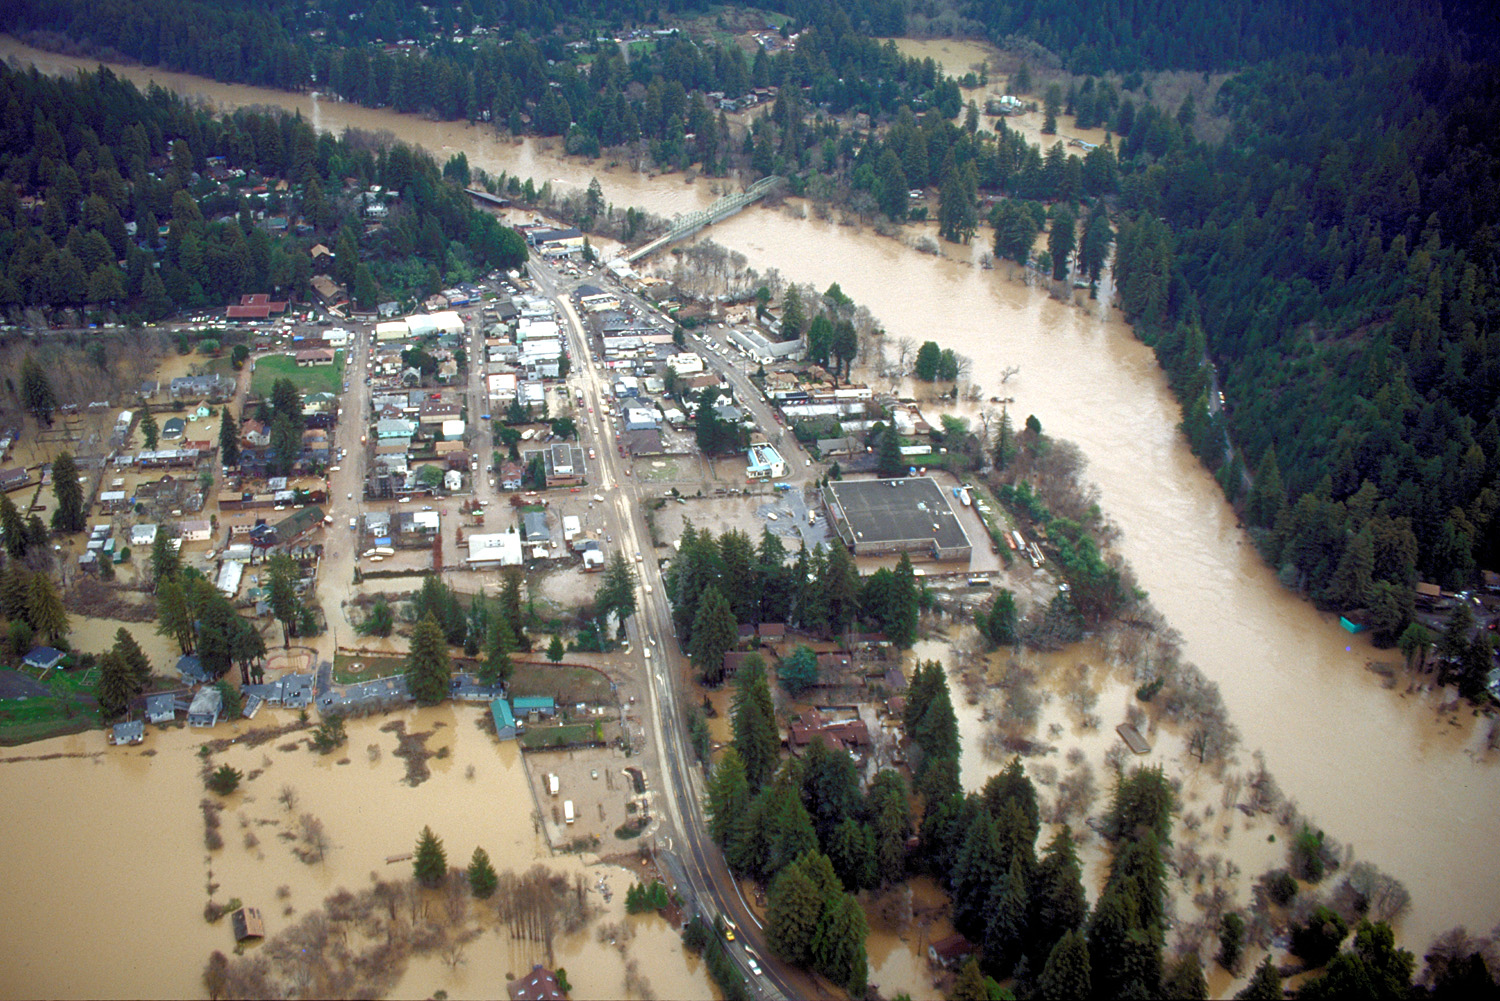 The Russian River flooded the city of Guerneville. The river has flooded many homes and roads.